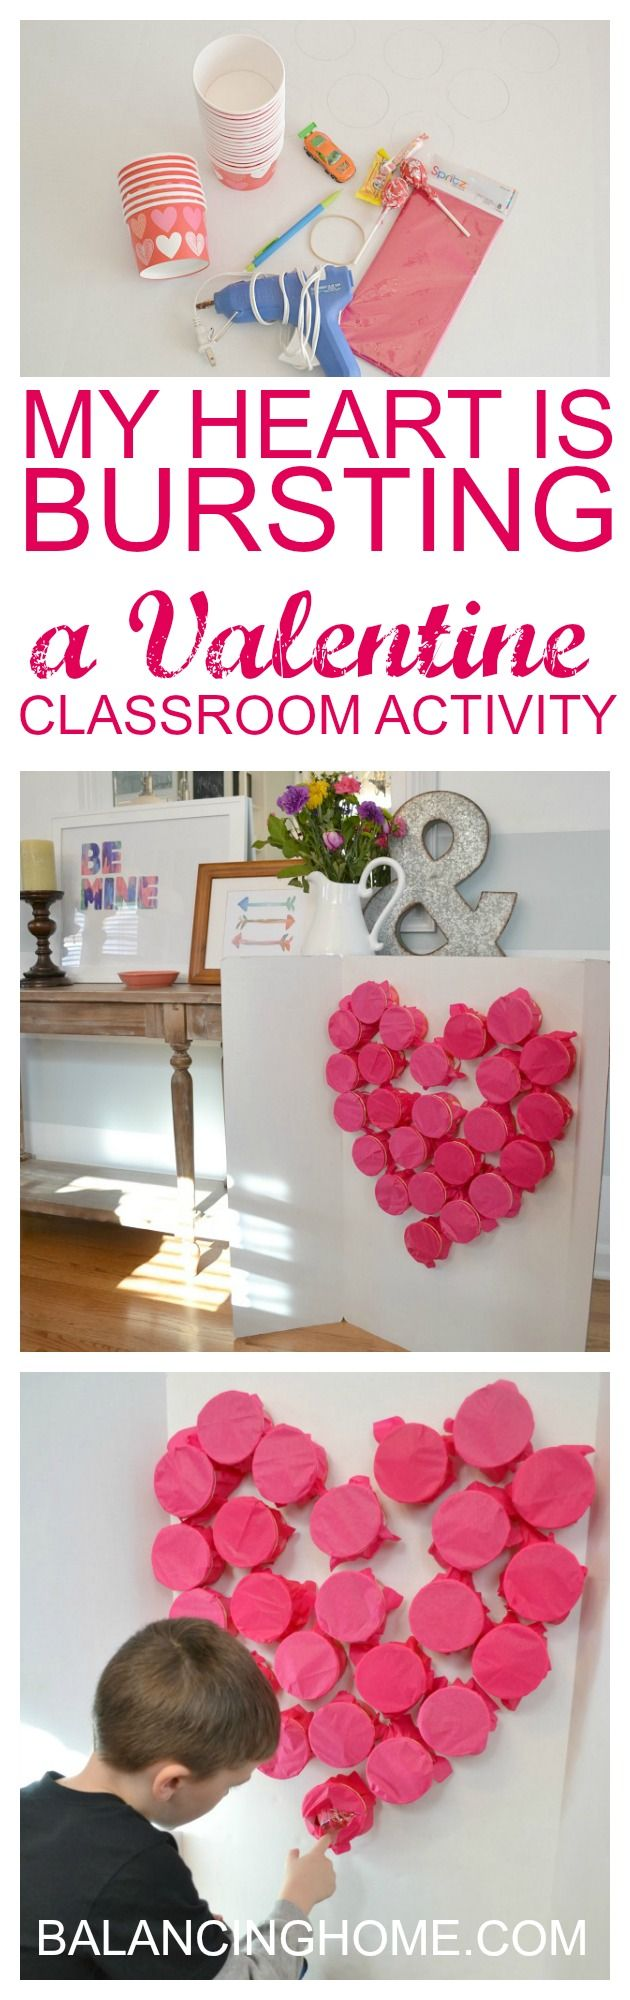 Saturday morning I whipped up this fun and completely reusable Valentine classroom activity. This little number doubles as an activity and Quinn's valentines. This project was completely inspired by my blogging friend Poofy Cheeks Wreck it Ralph Birthday Party. My son became obsessed with it when he saw me reading her blog, but specifically really …